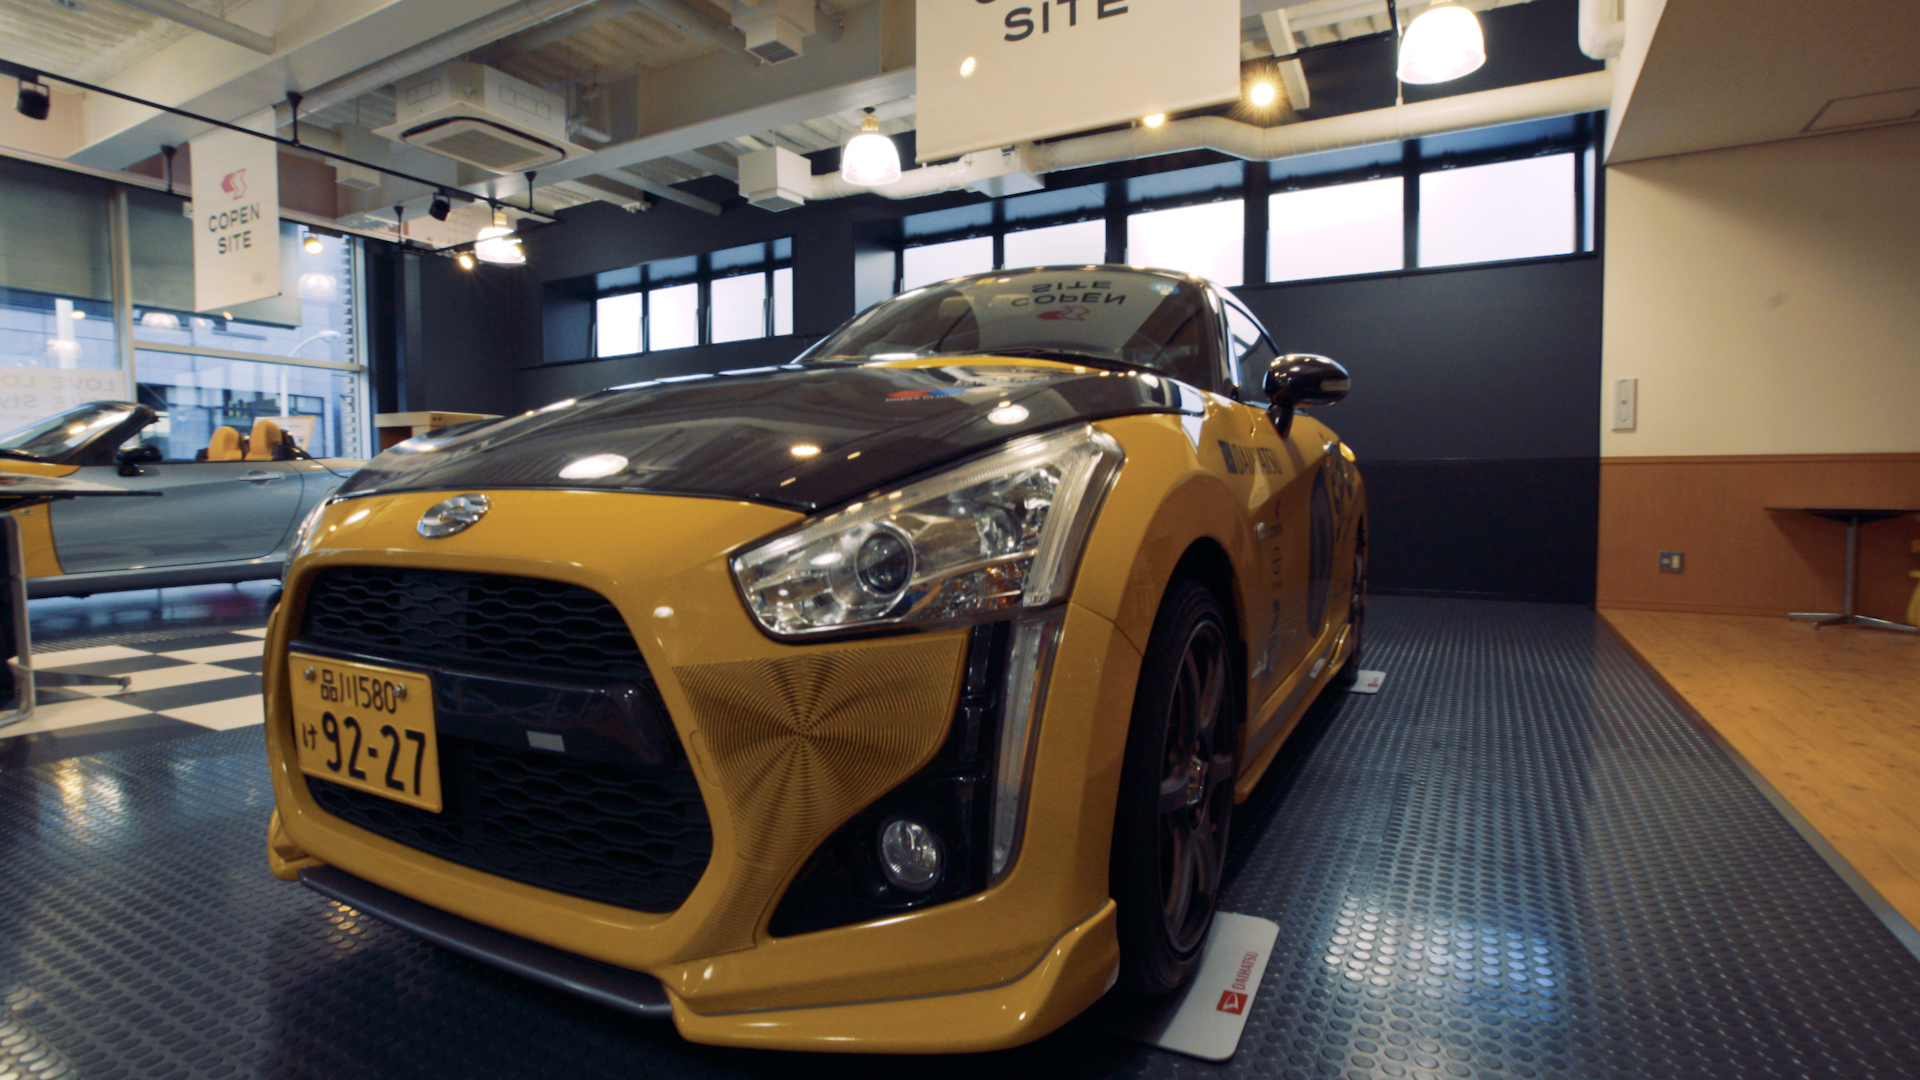 Offering a potential glimpse of the future for collision repairers and modders, Stratasys announced Monday it would 3-D-print custom body skins for Daihatsu Copens. (Provided by Stratasys)